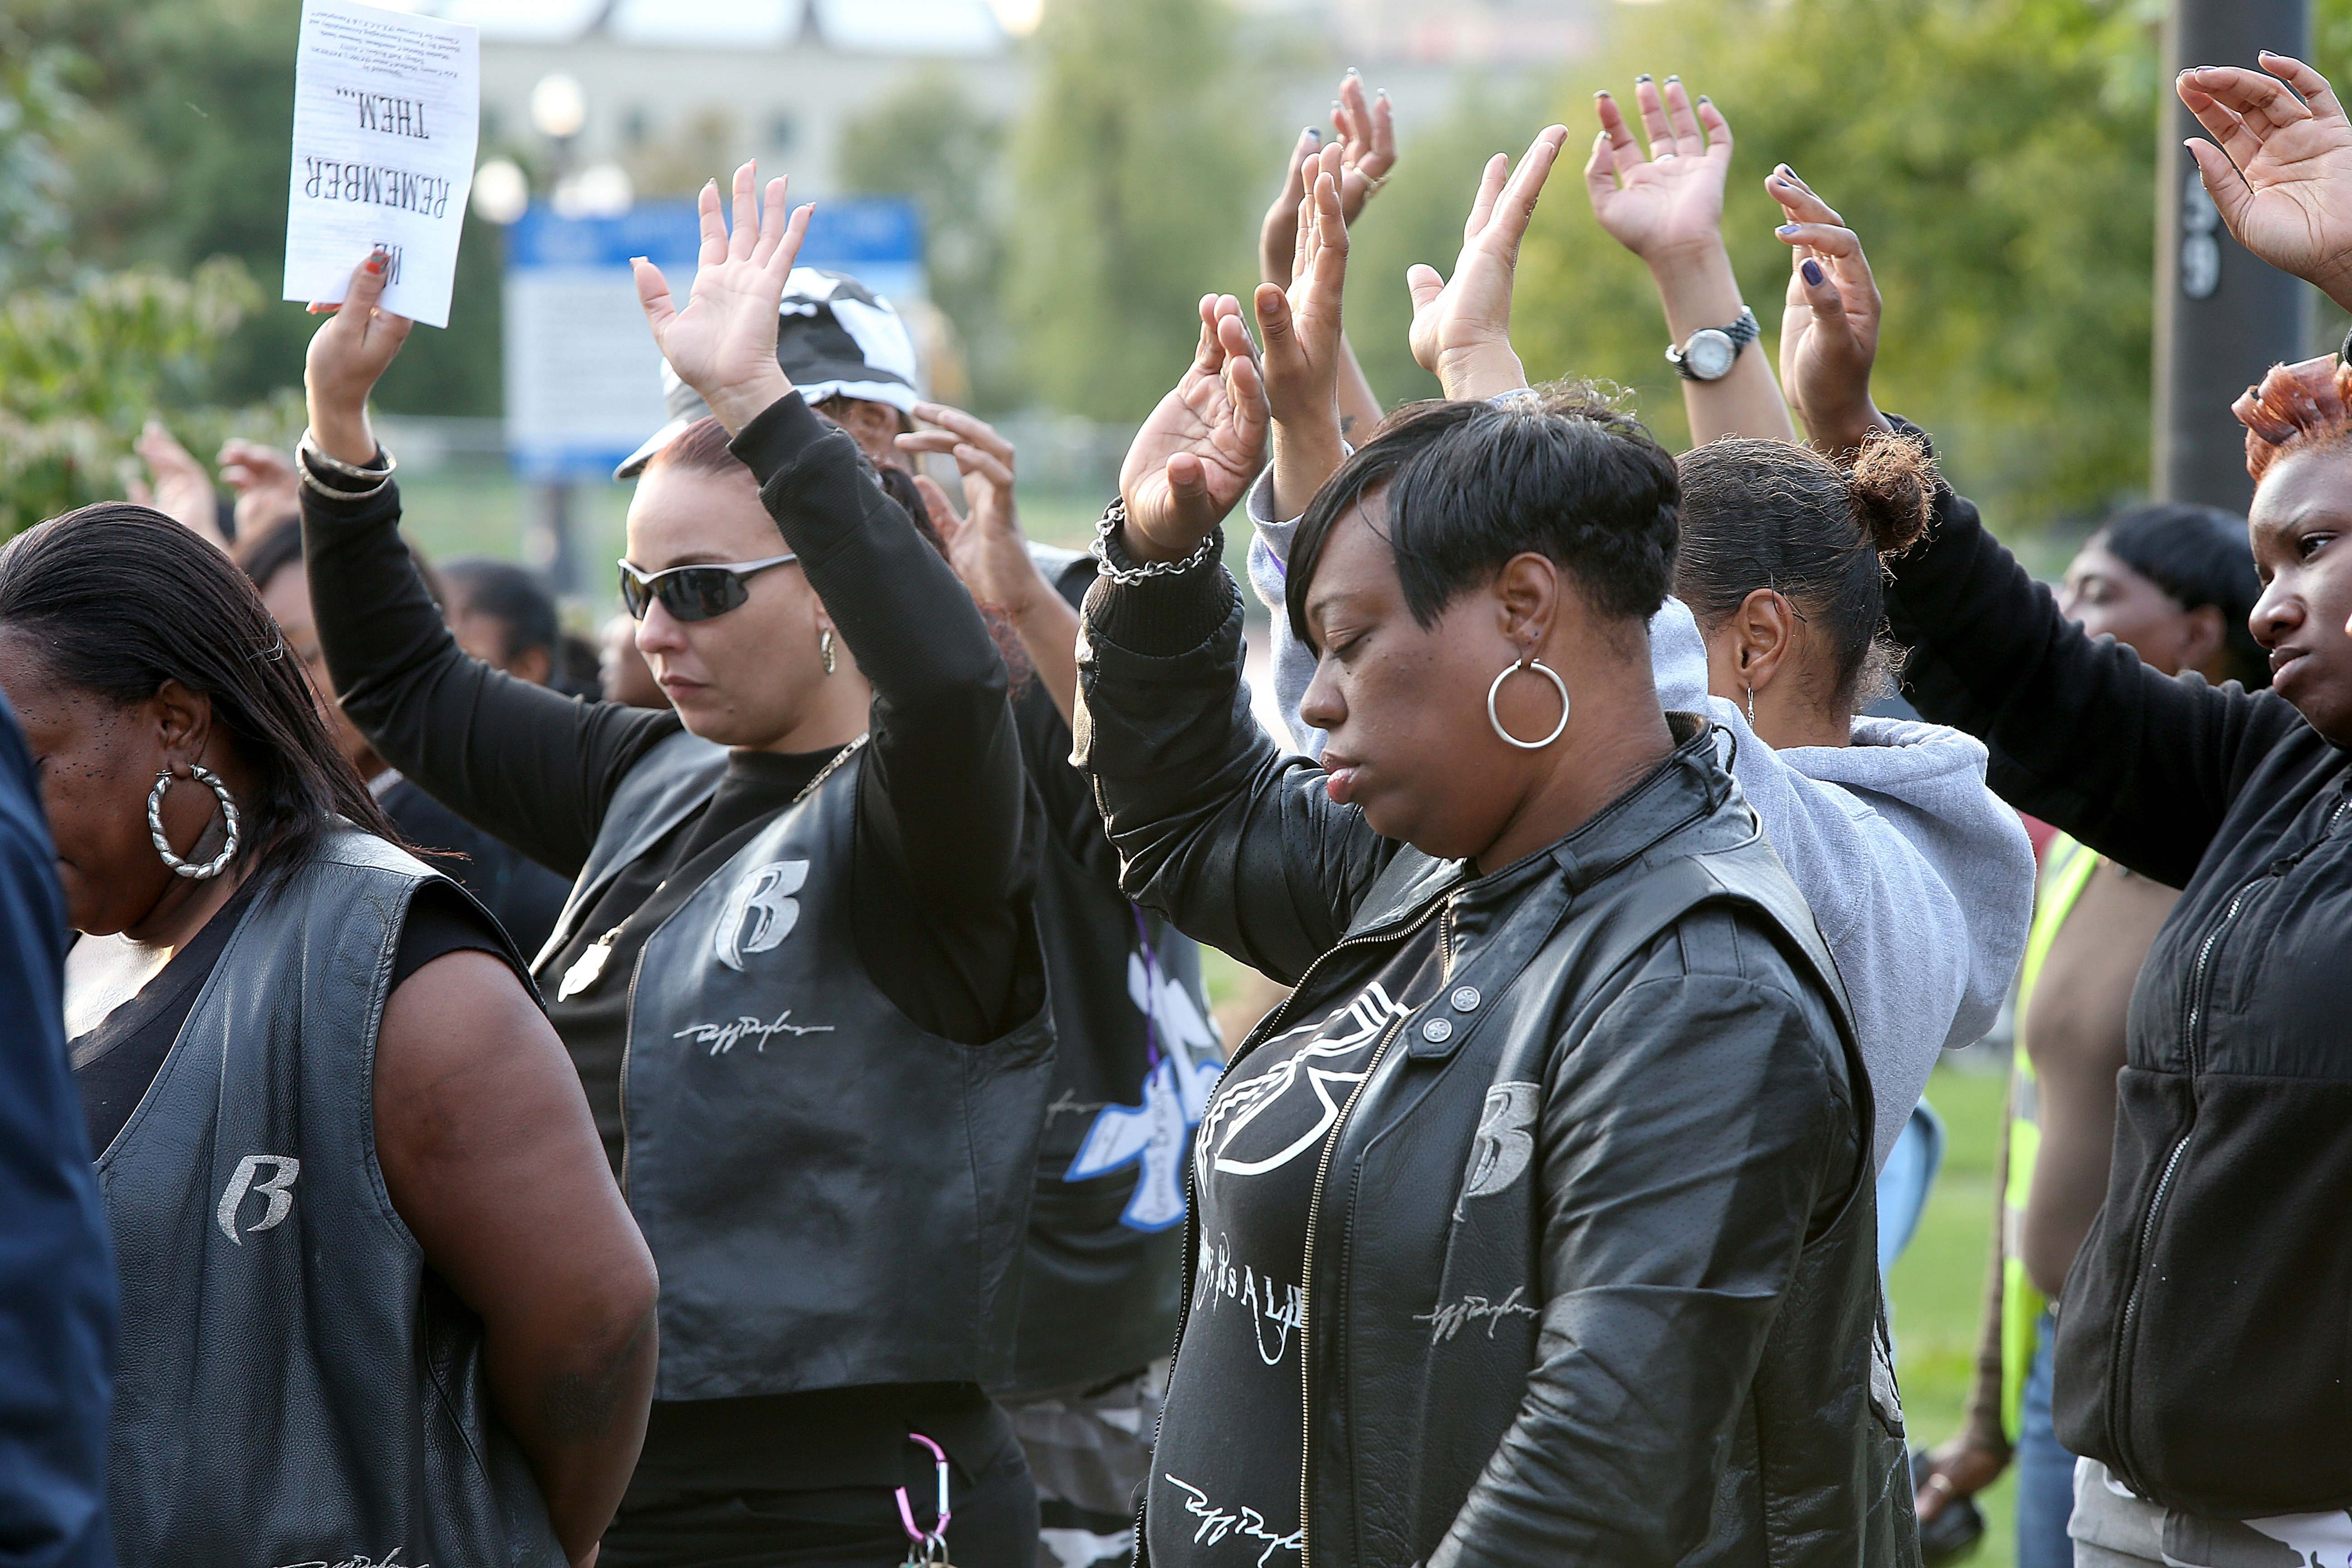 Robert Kirkham/Buffalo News    Sylvia Bryant, right, prays for her mother, Latefya Lewis, who was stabbed to death in 2005, during a remembrance for murder victims held at Martin Luther King Jr. Park.